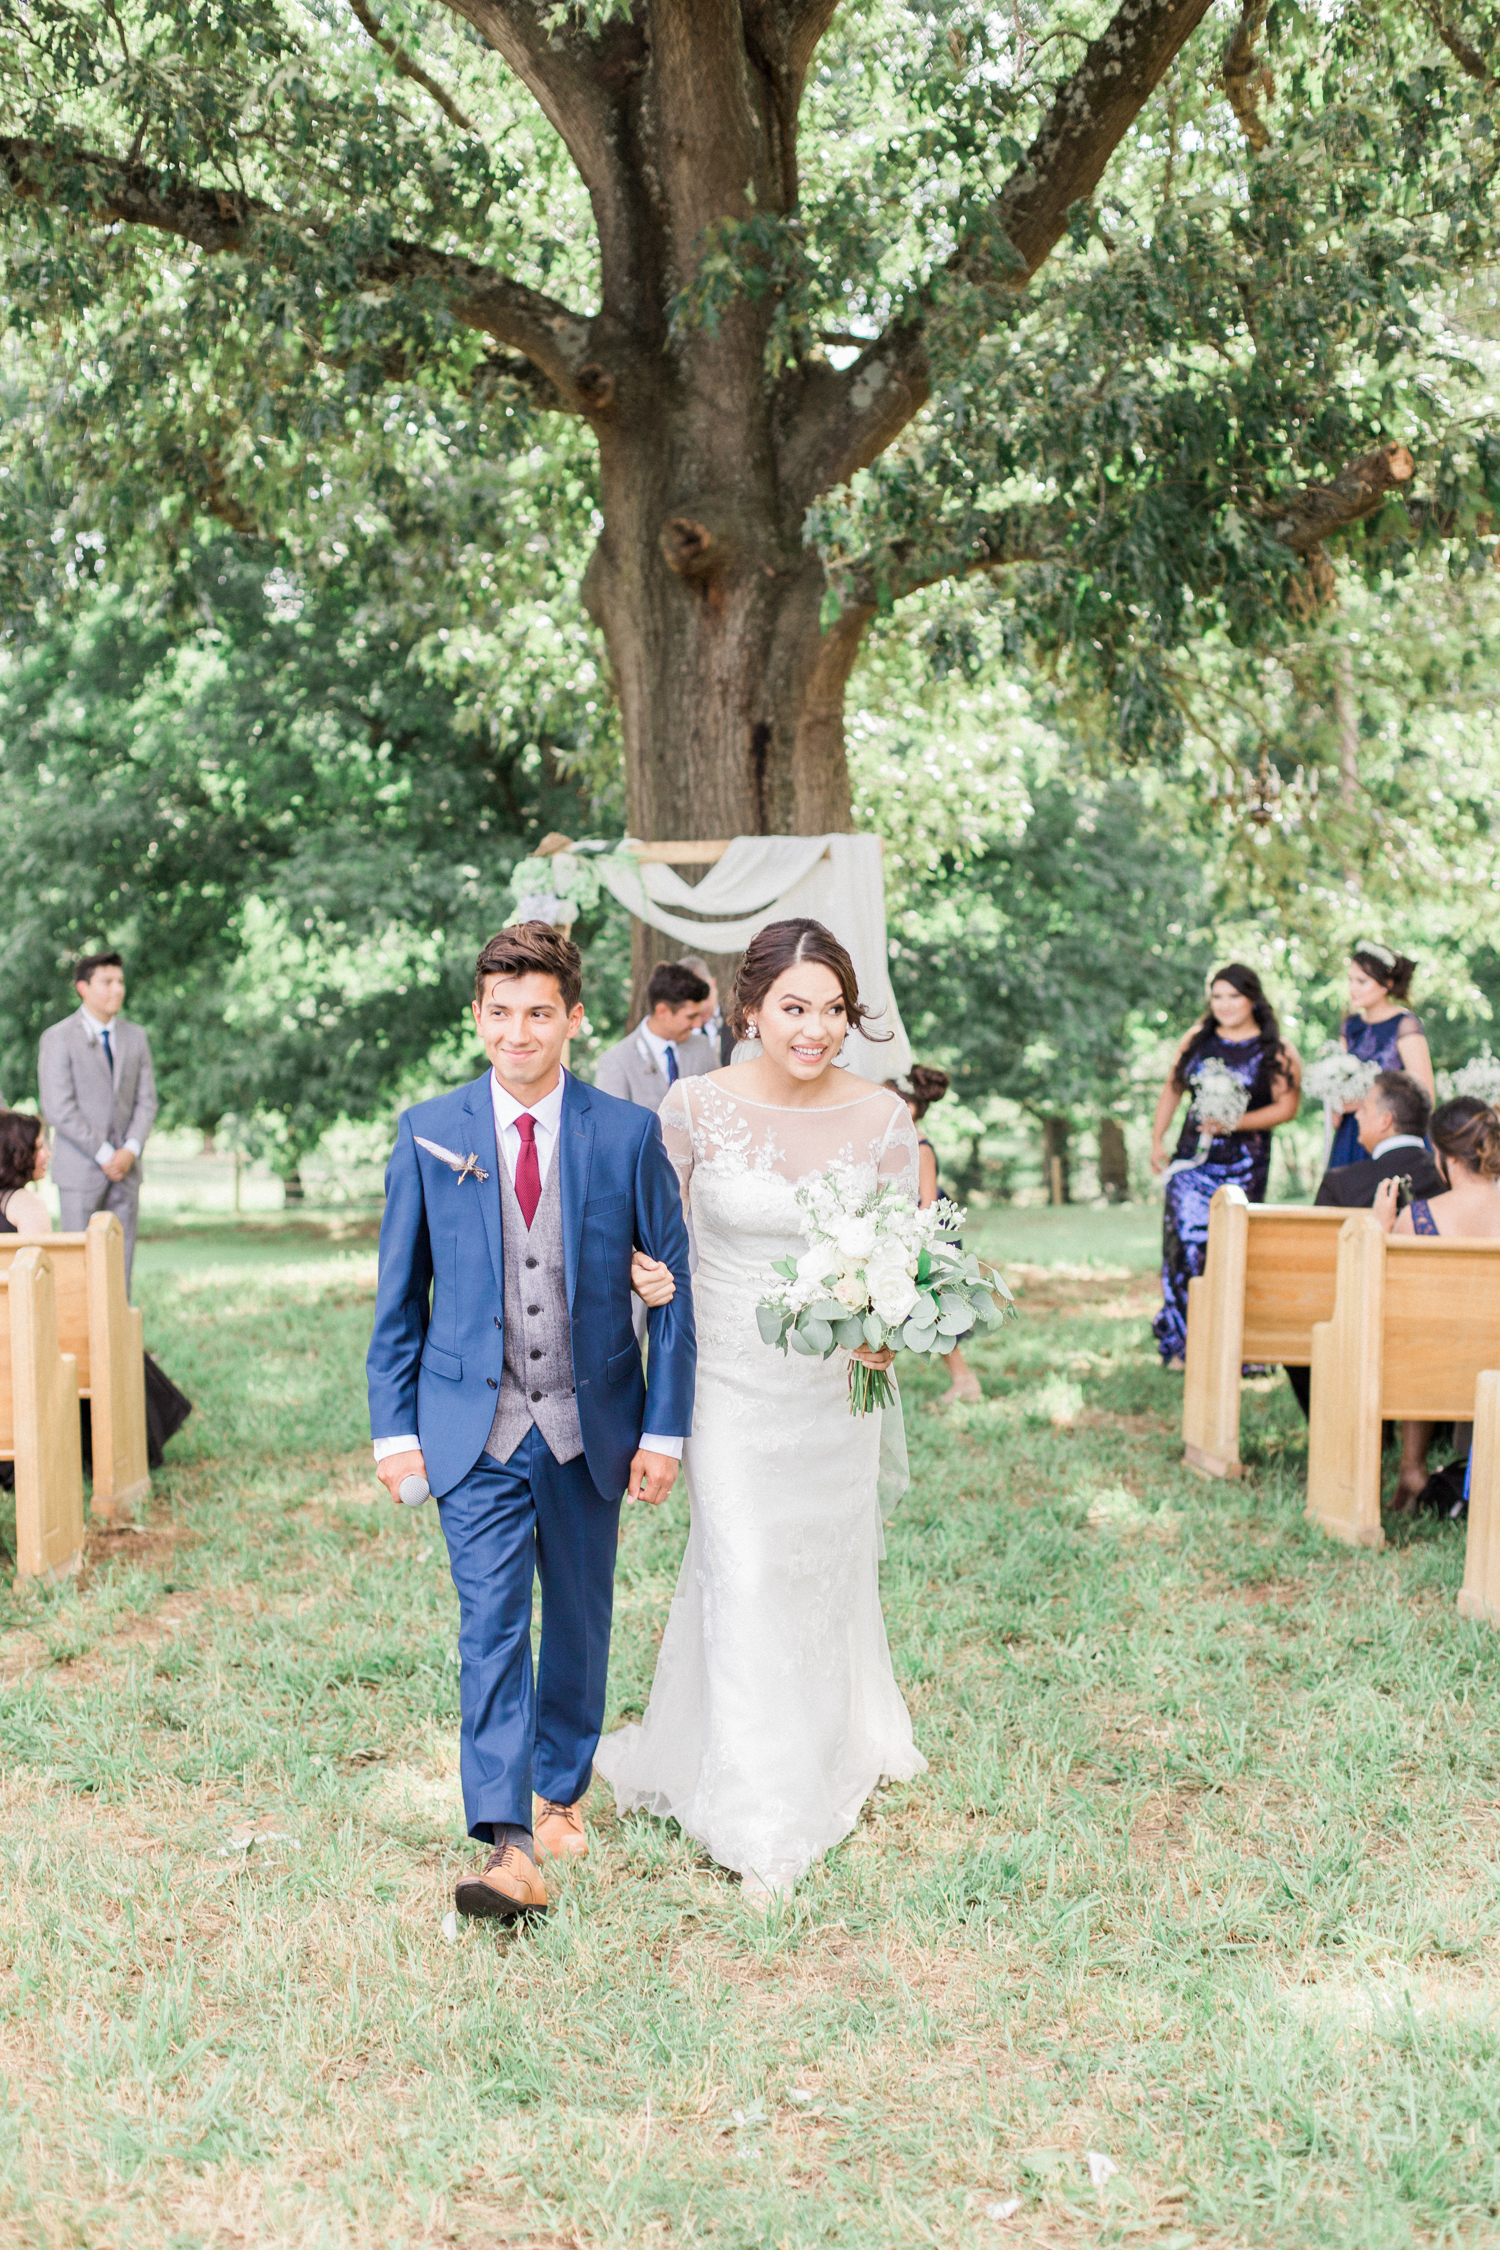 Walking back down the aisle as husband and wife. Summer, outdoor, barn wedding in north Georgia at Hays McDonald Farm in Jefferson, Georgia. Photo by Kesia Marie Photography - Fine Art Wedding Photographer.